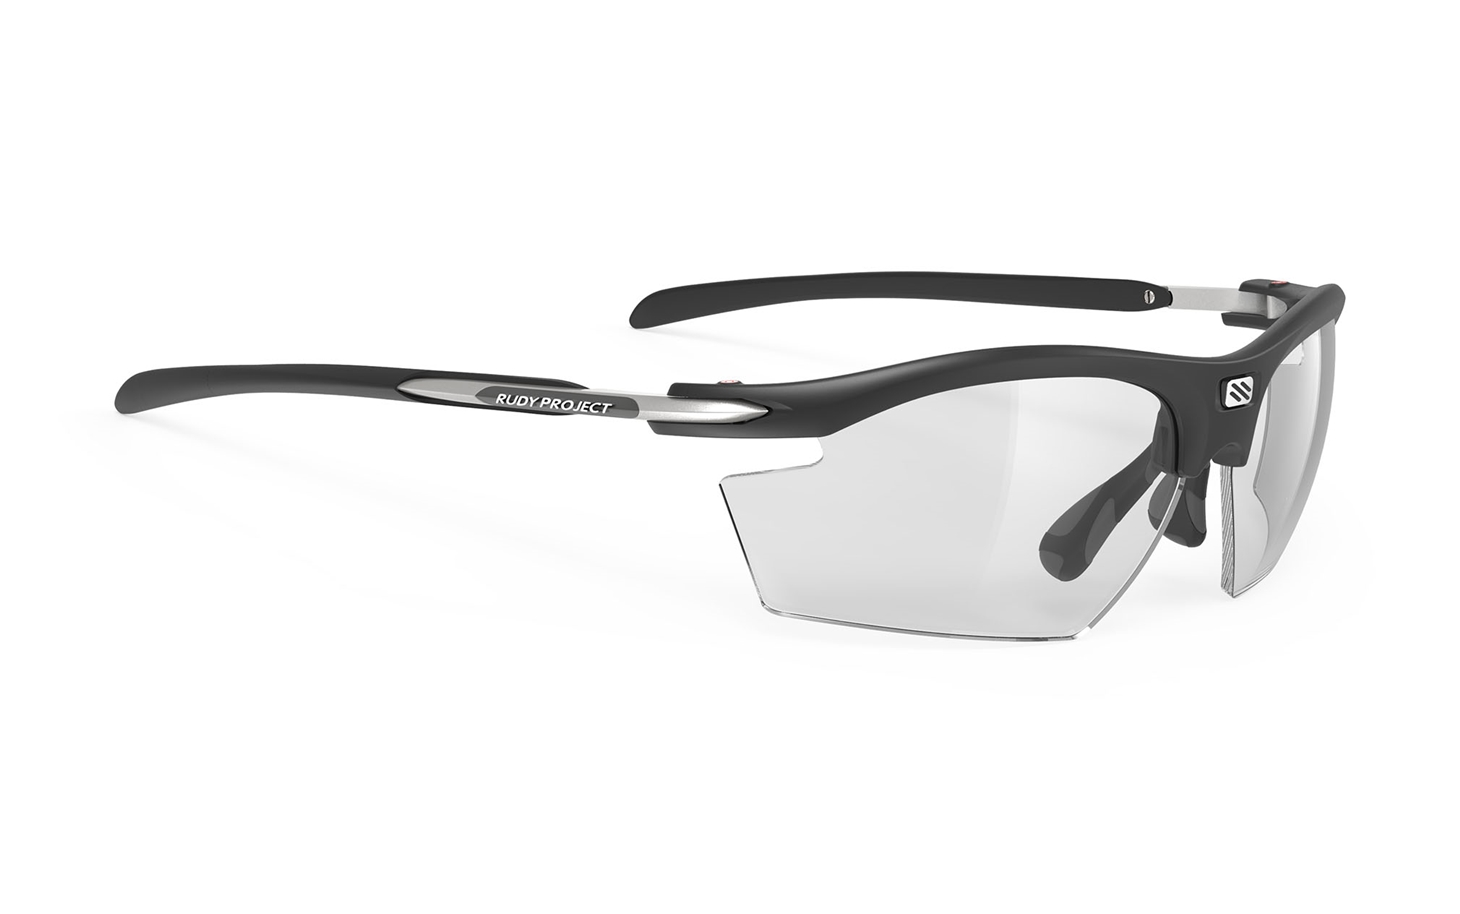 6f8007425f3 Glasses and sports helmets - Rudy Project